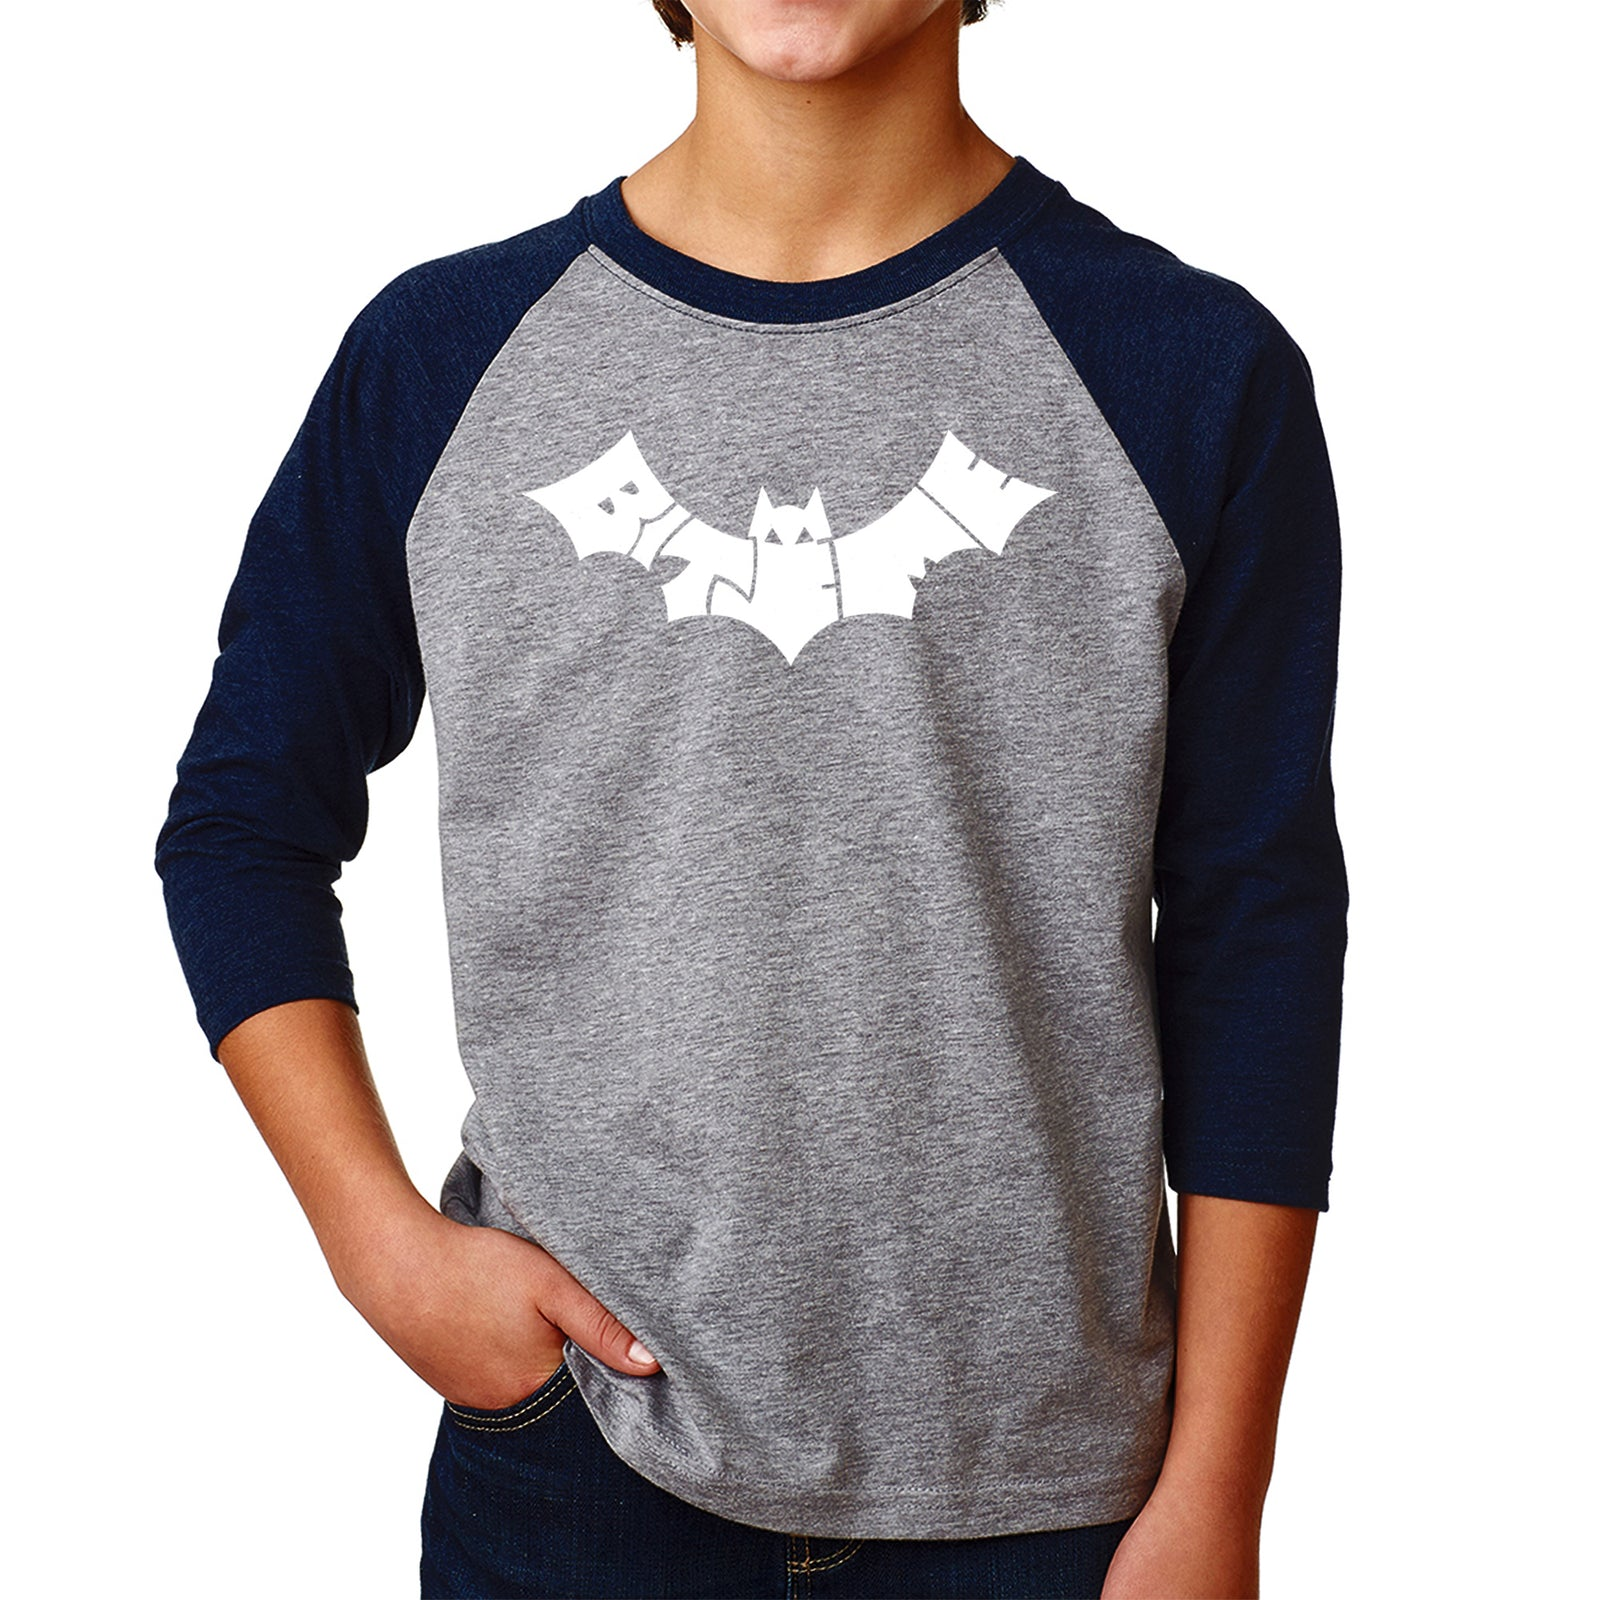 Boy's Raglan Baseball Word Art T-shirt - BAT - BITE ME